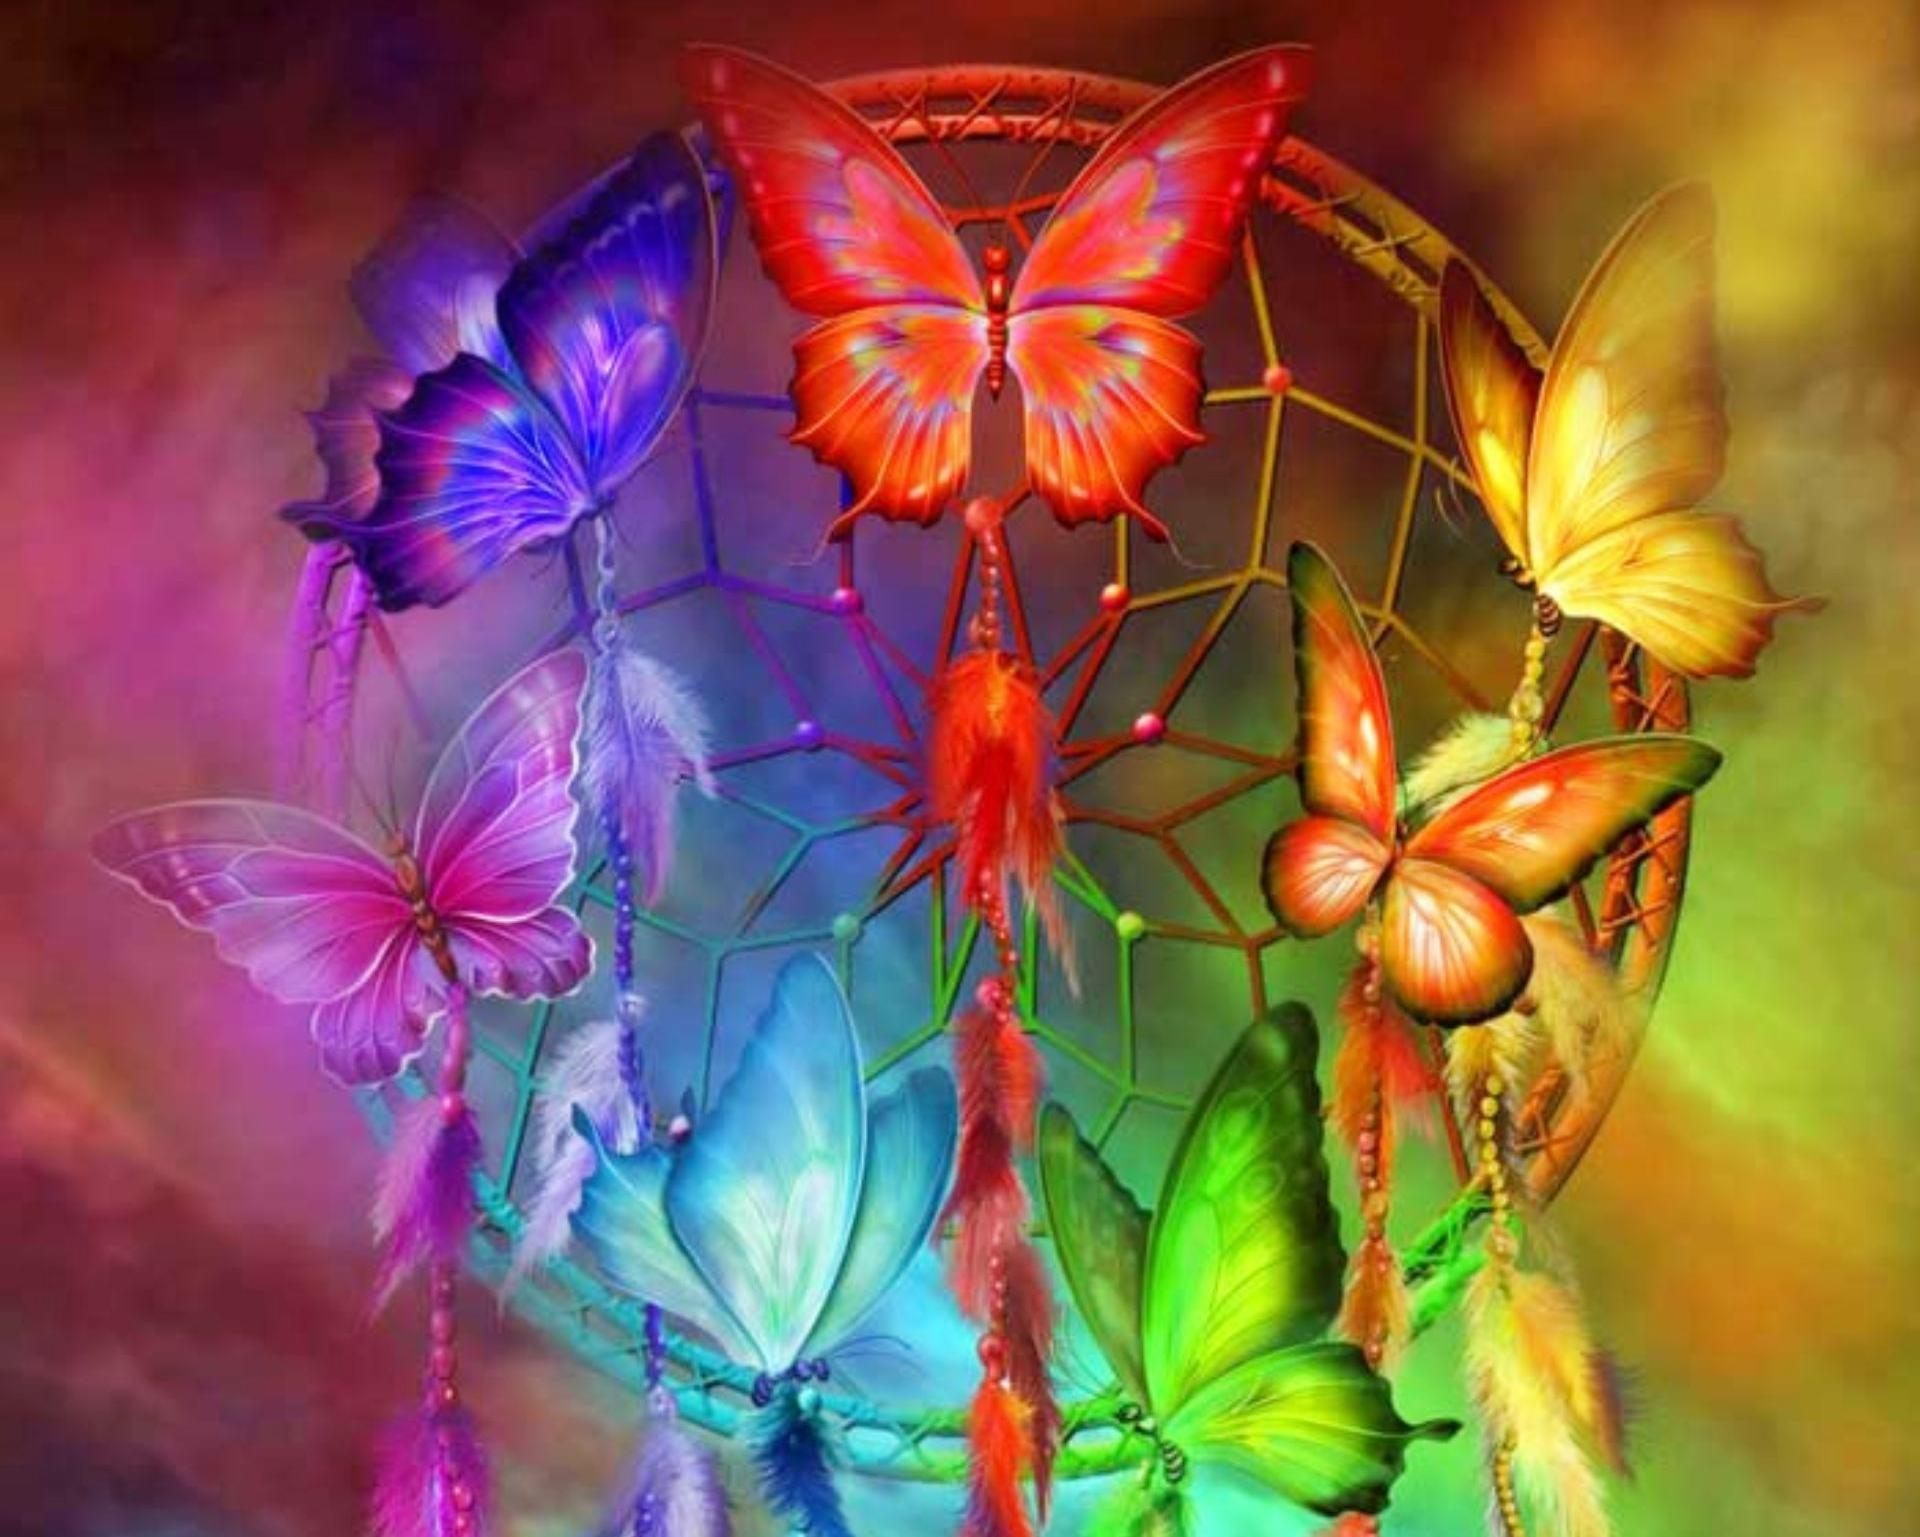 Rainbow Butterfly Wallpapers - Top Free Rainbow Butterfly ...